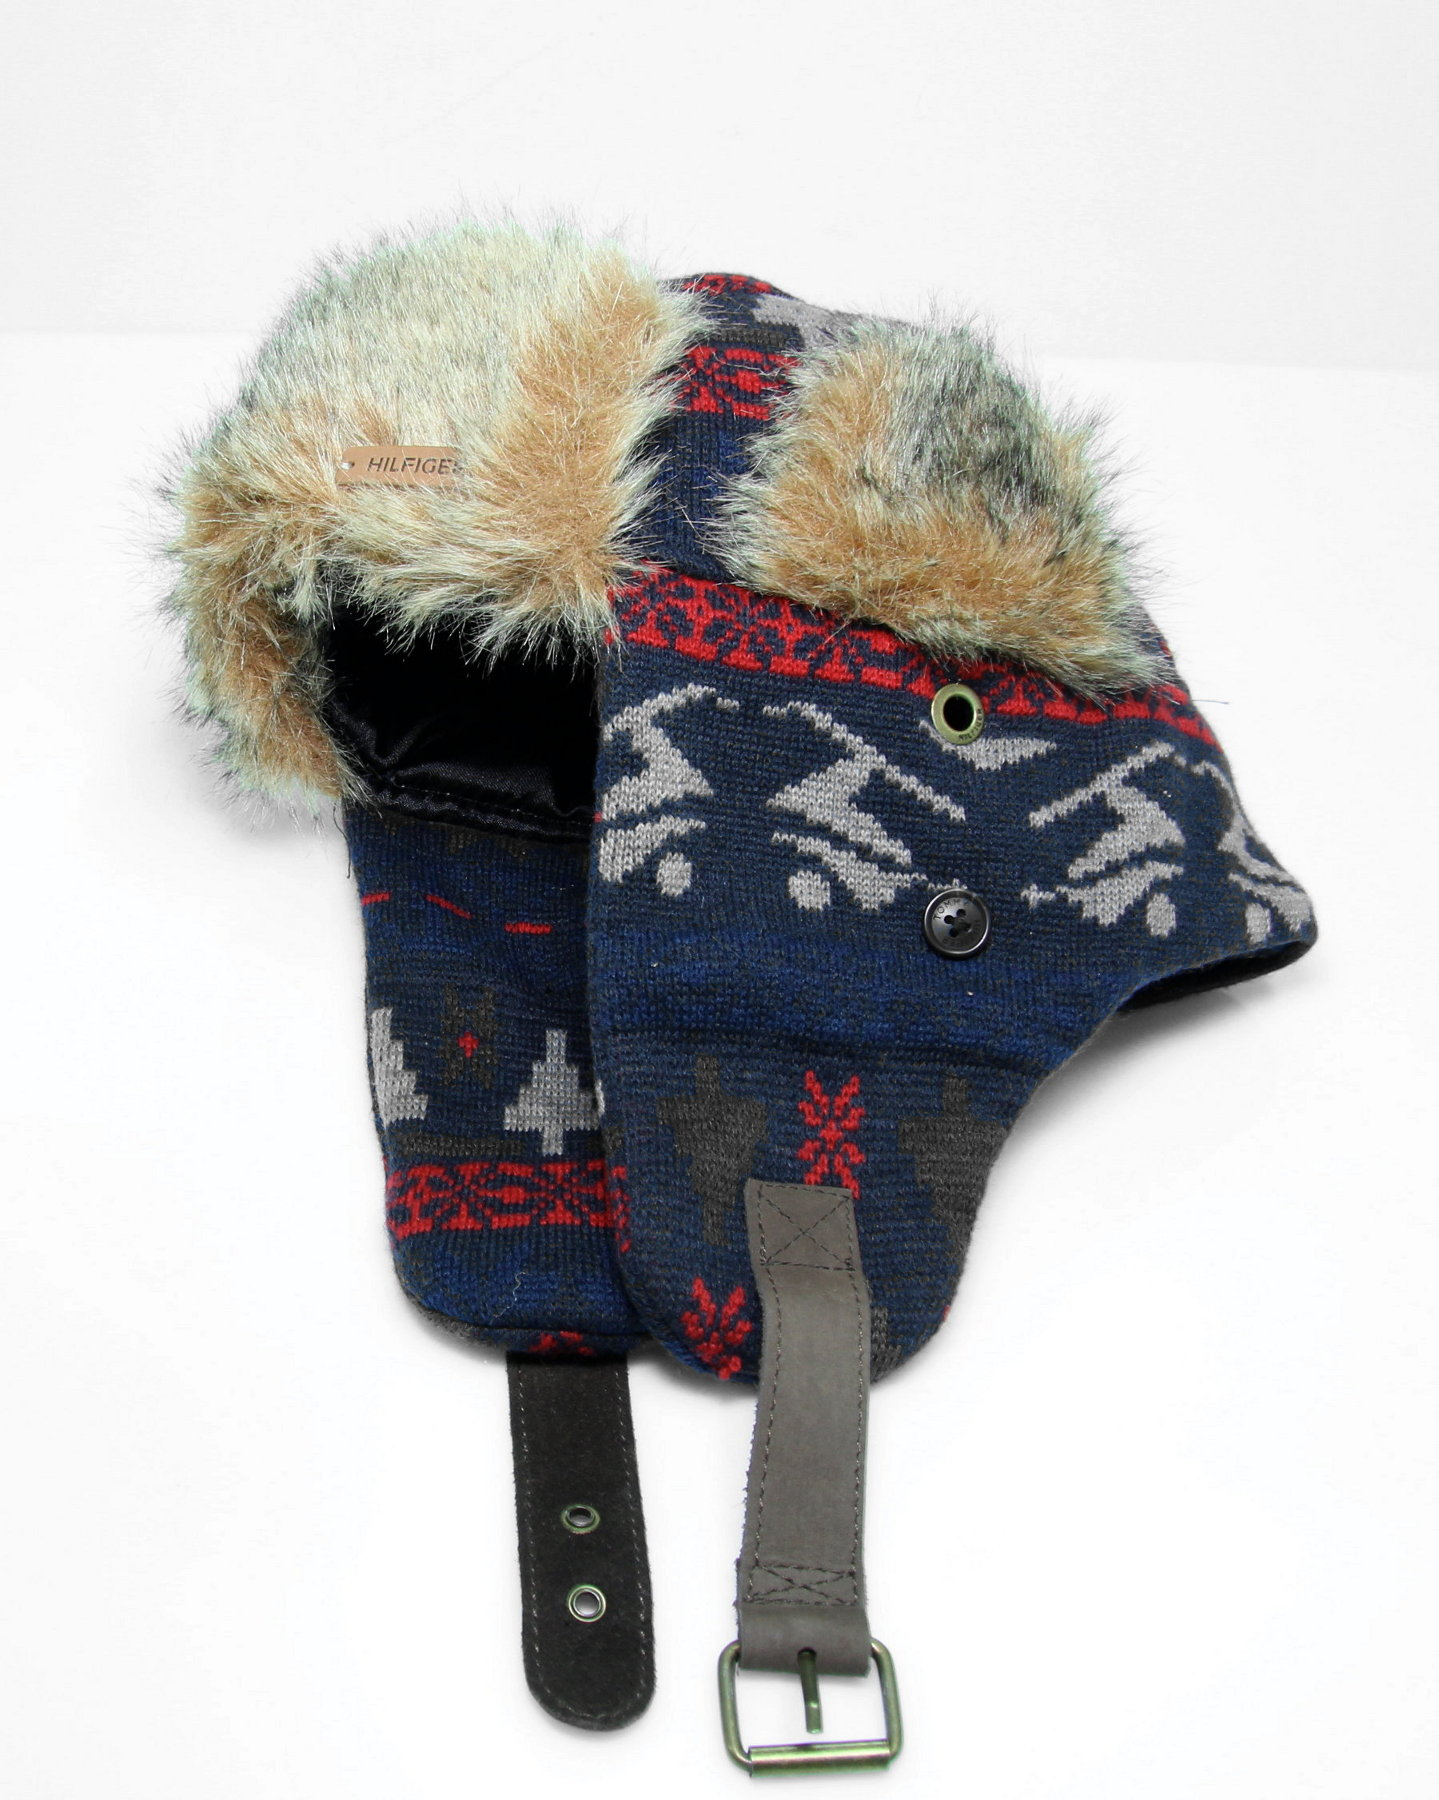 Tommy Hilfiger Hat - Christmas Giveaway